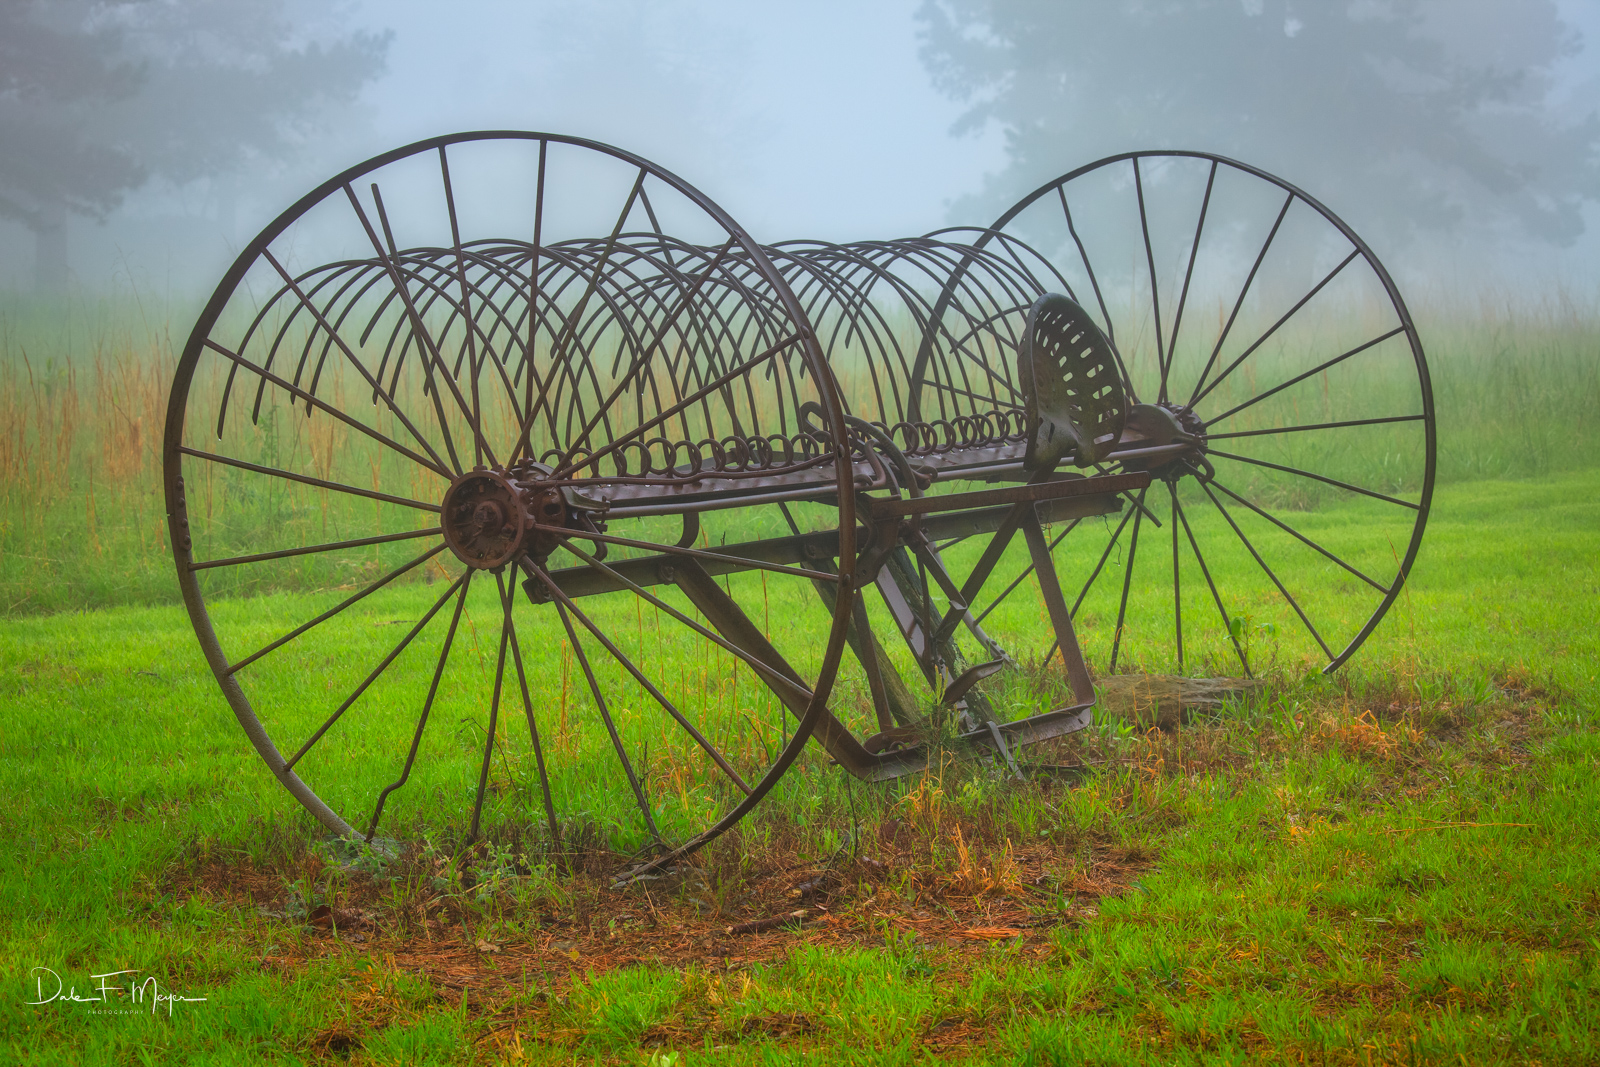 Old horse drawn hay rake,fog,spring 2011, photo